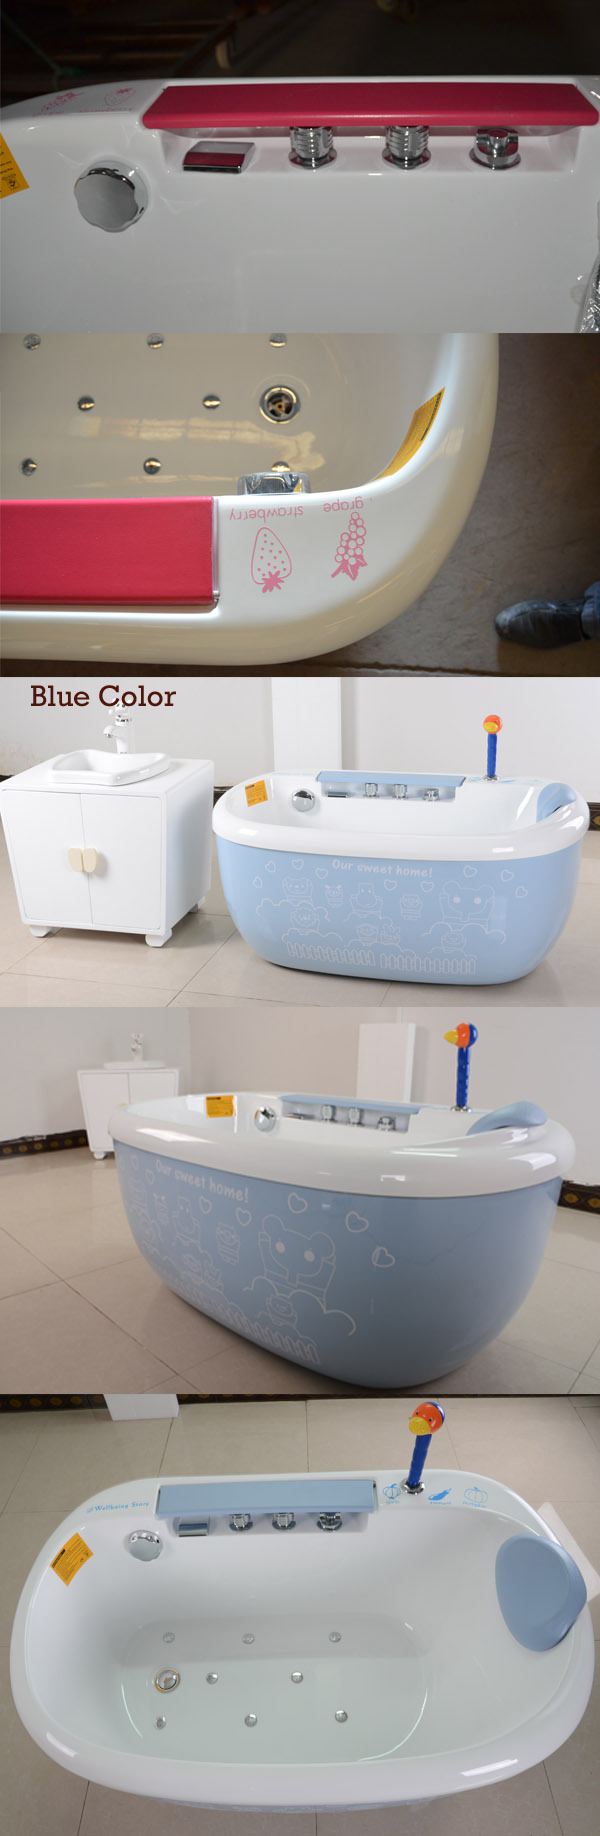 Magnificent Paint Bathtub Thick Paint For Bathtub Rectangular Bath Refinishing Service How To Paint A Tub Young Can I Paint My Bathtub Pink Bathtub Refinishing Companies